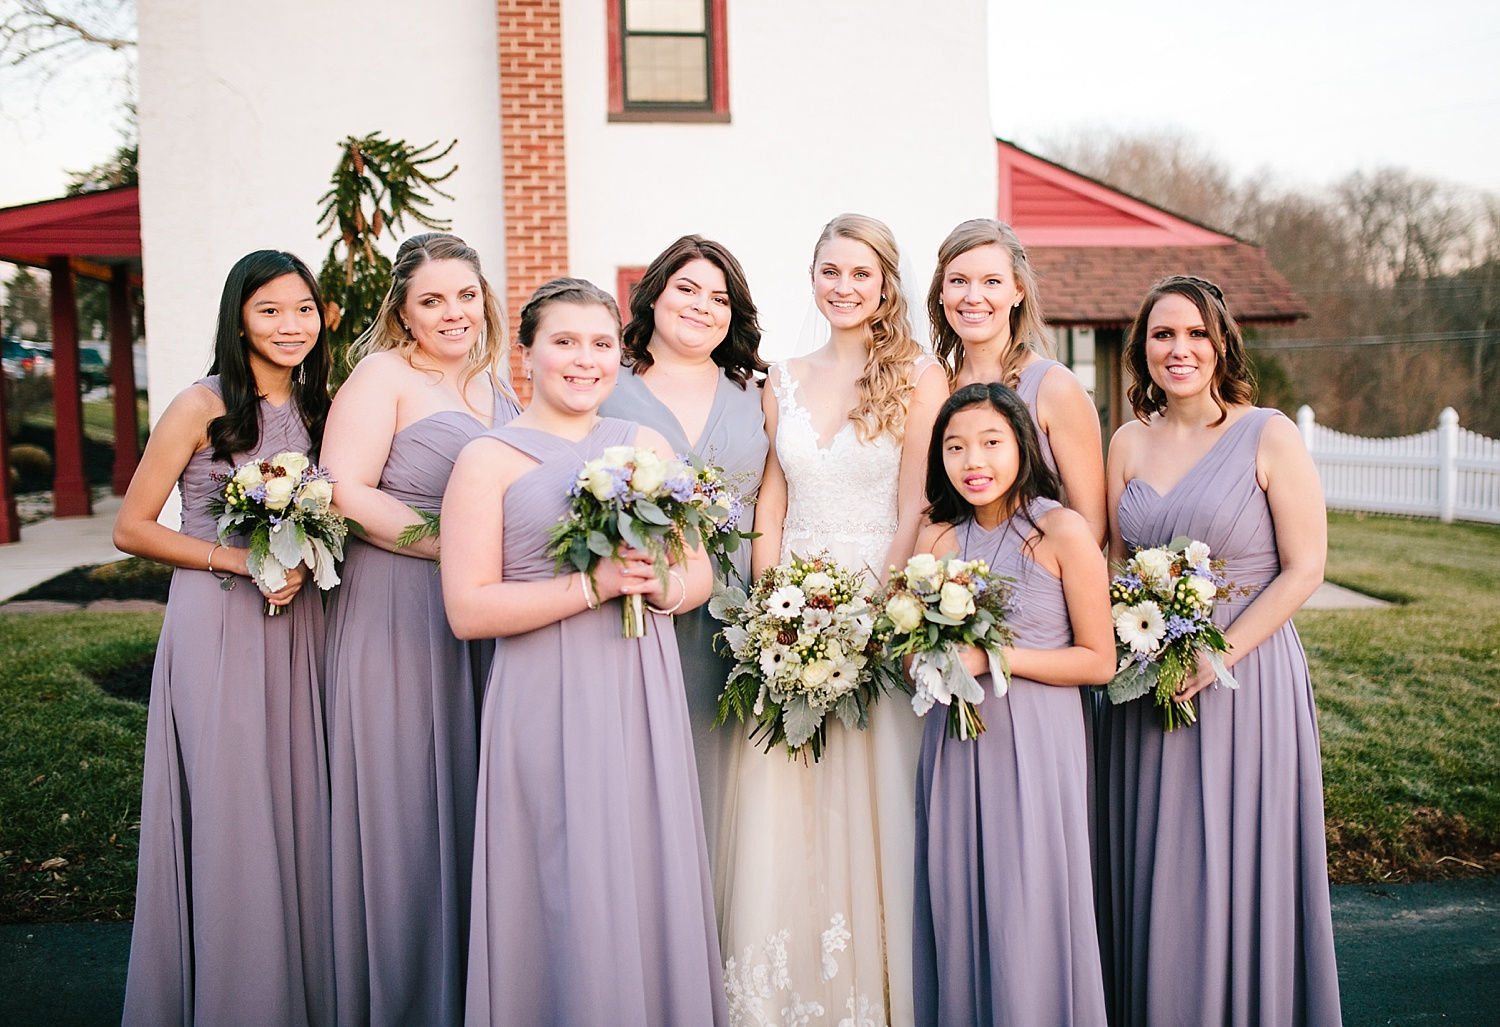 jessdavid_barnonbridge_phoenixville_winter_wedding_image_084.jpg